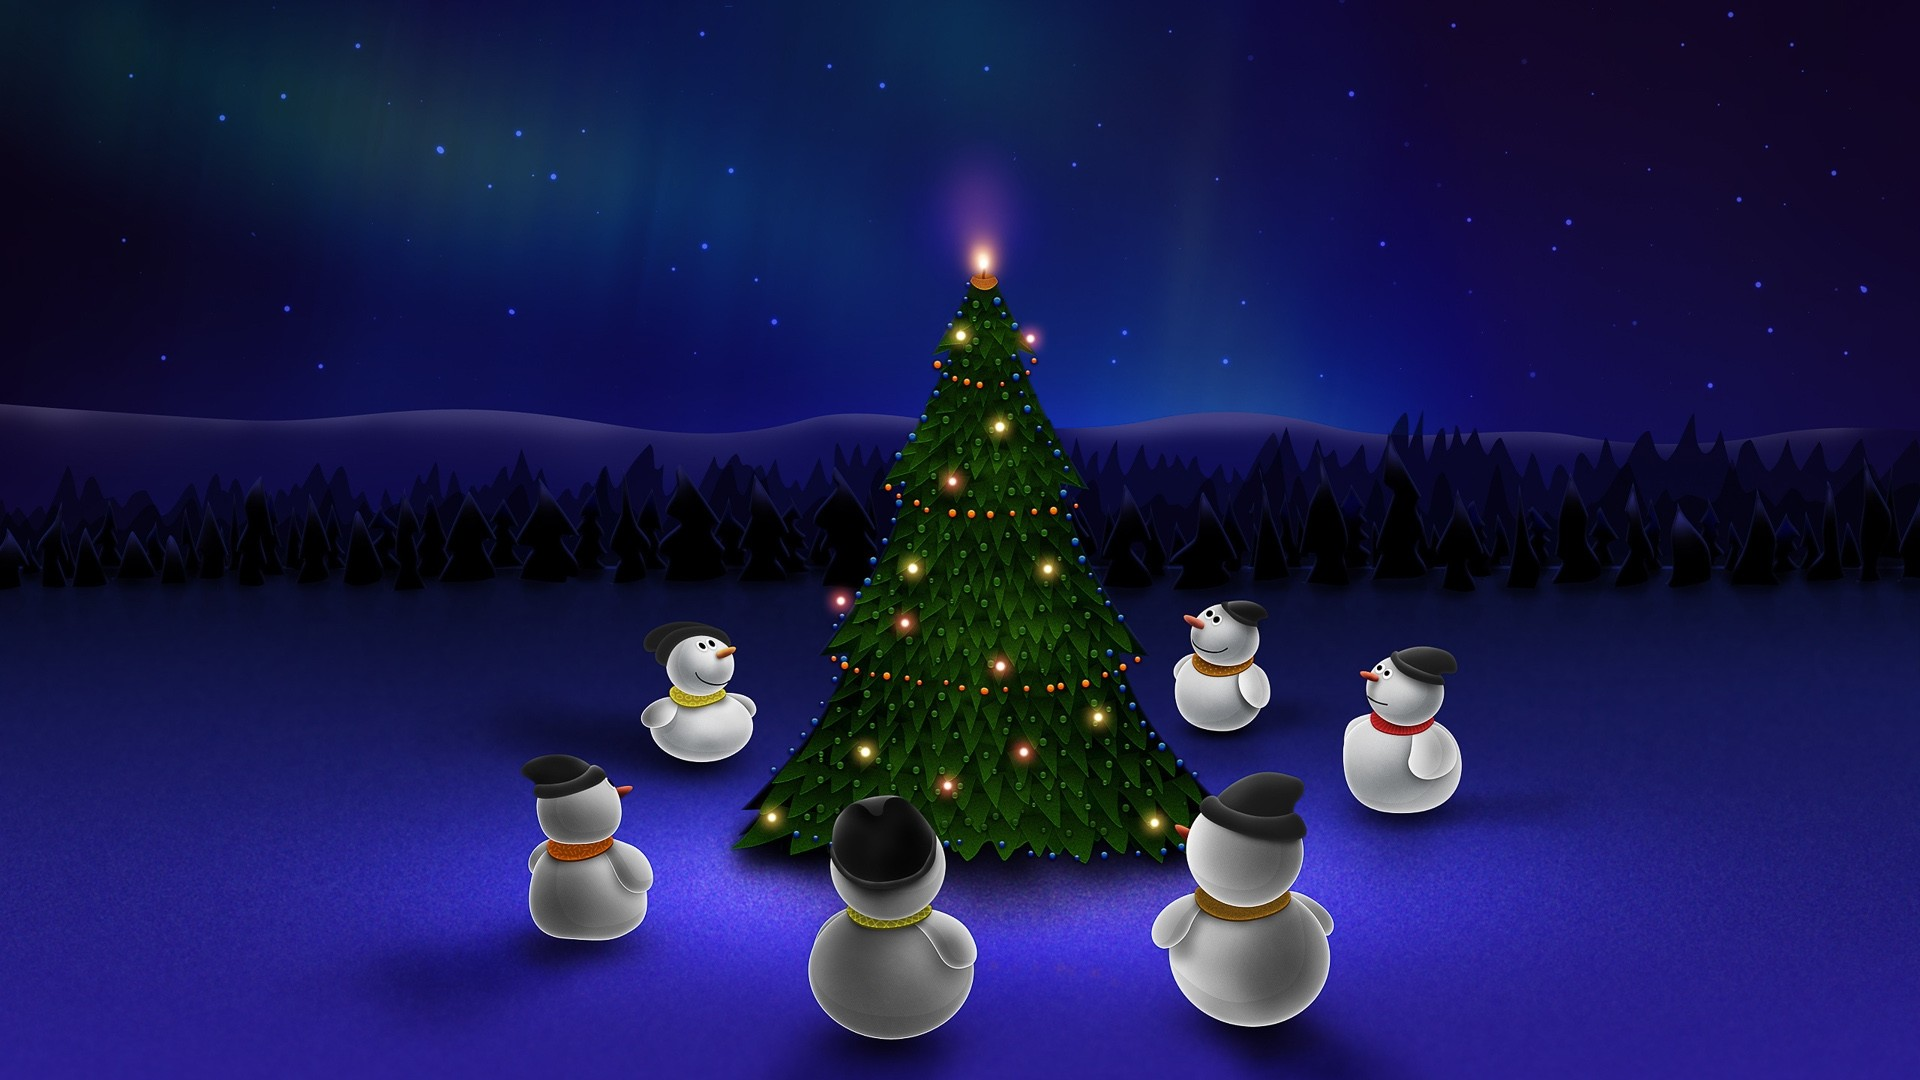 1920x1200 Merry Christmas background Desktop Wallpaper | High Quality Wallpapers .